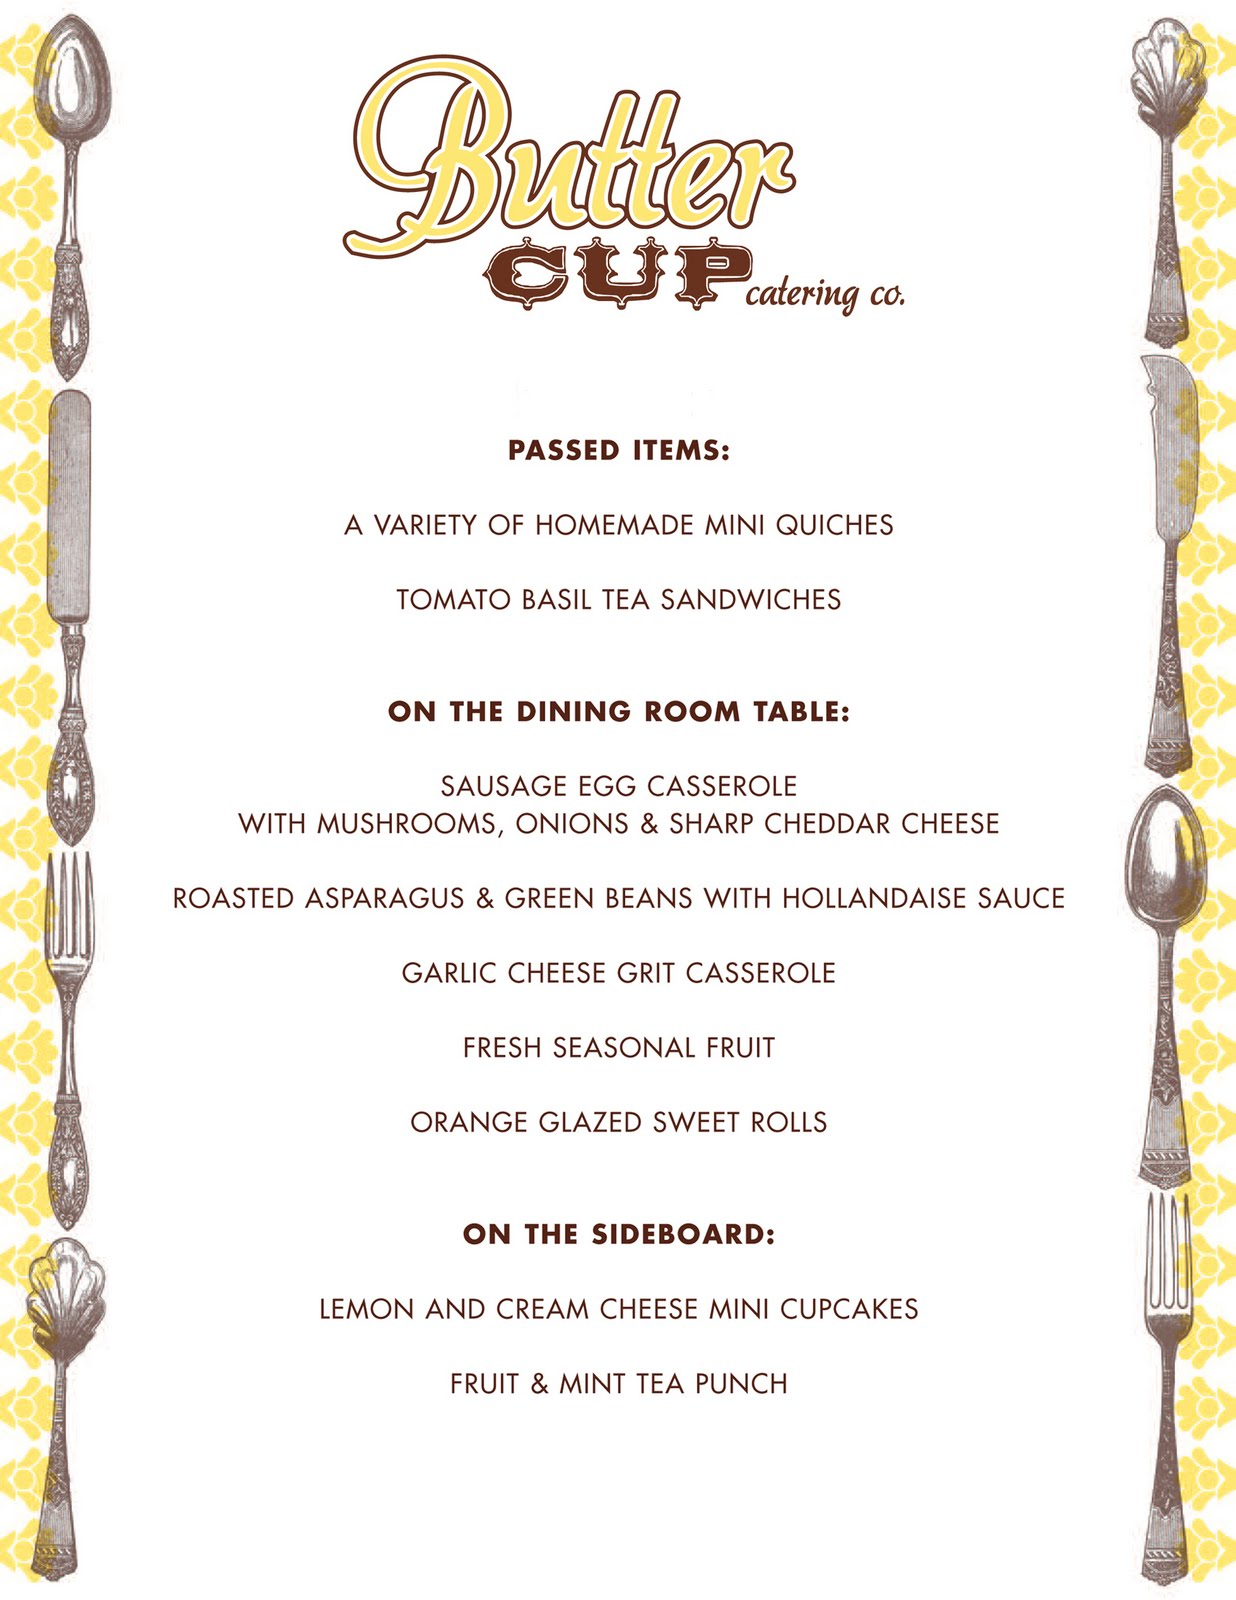 i put together a truly scrumptious feast it really turned out well here is the menu for the event along with a couple of party pics enjoy